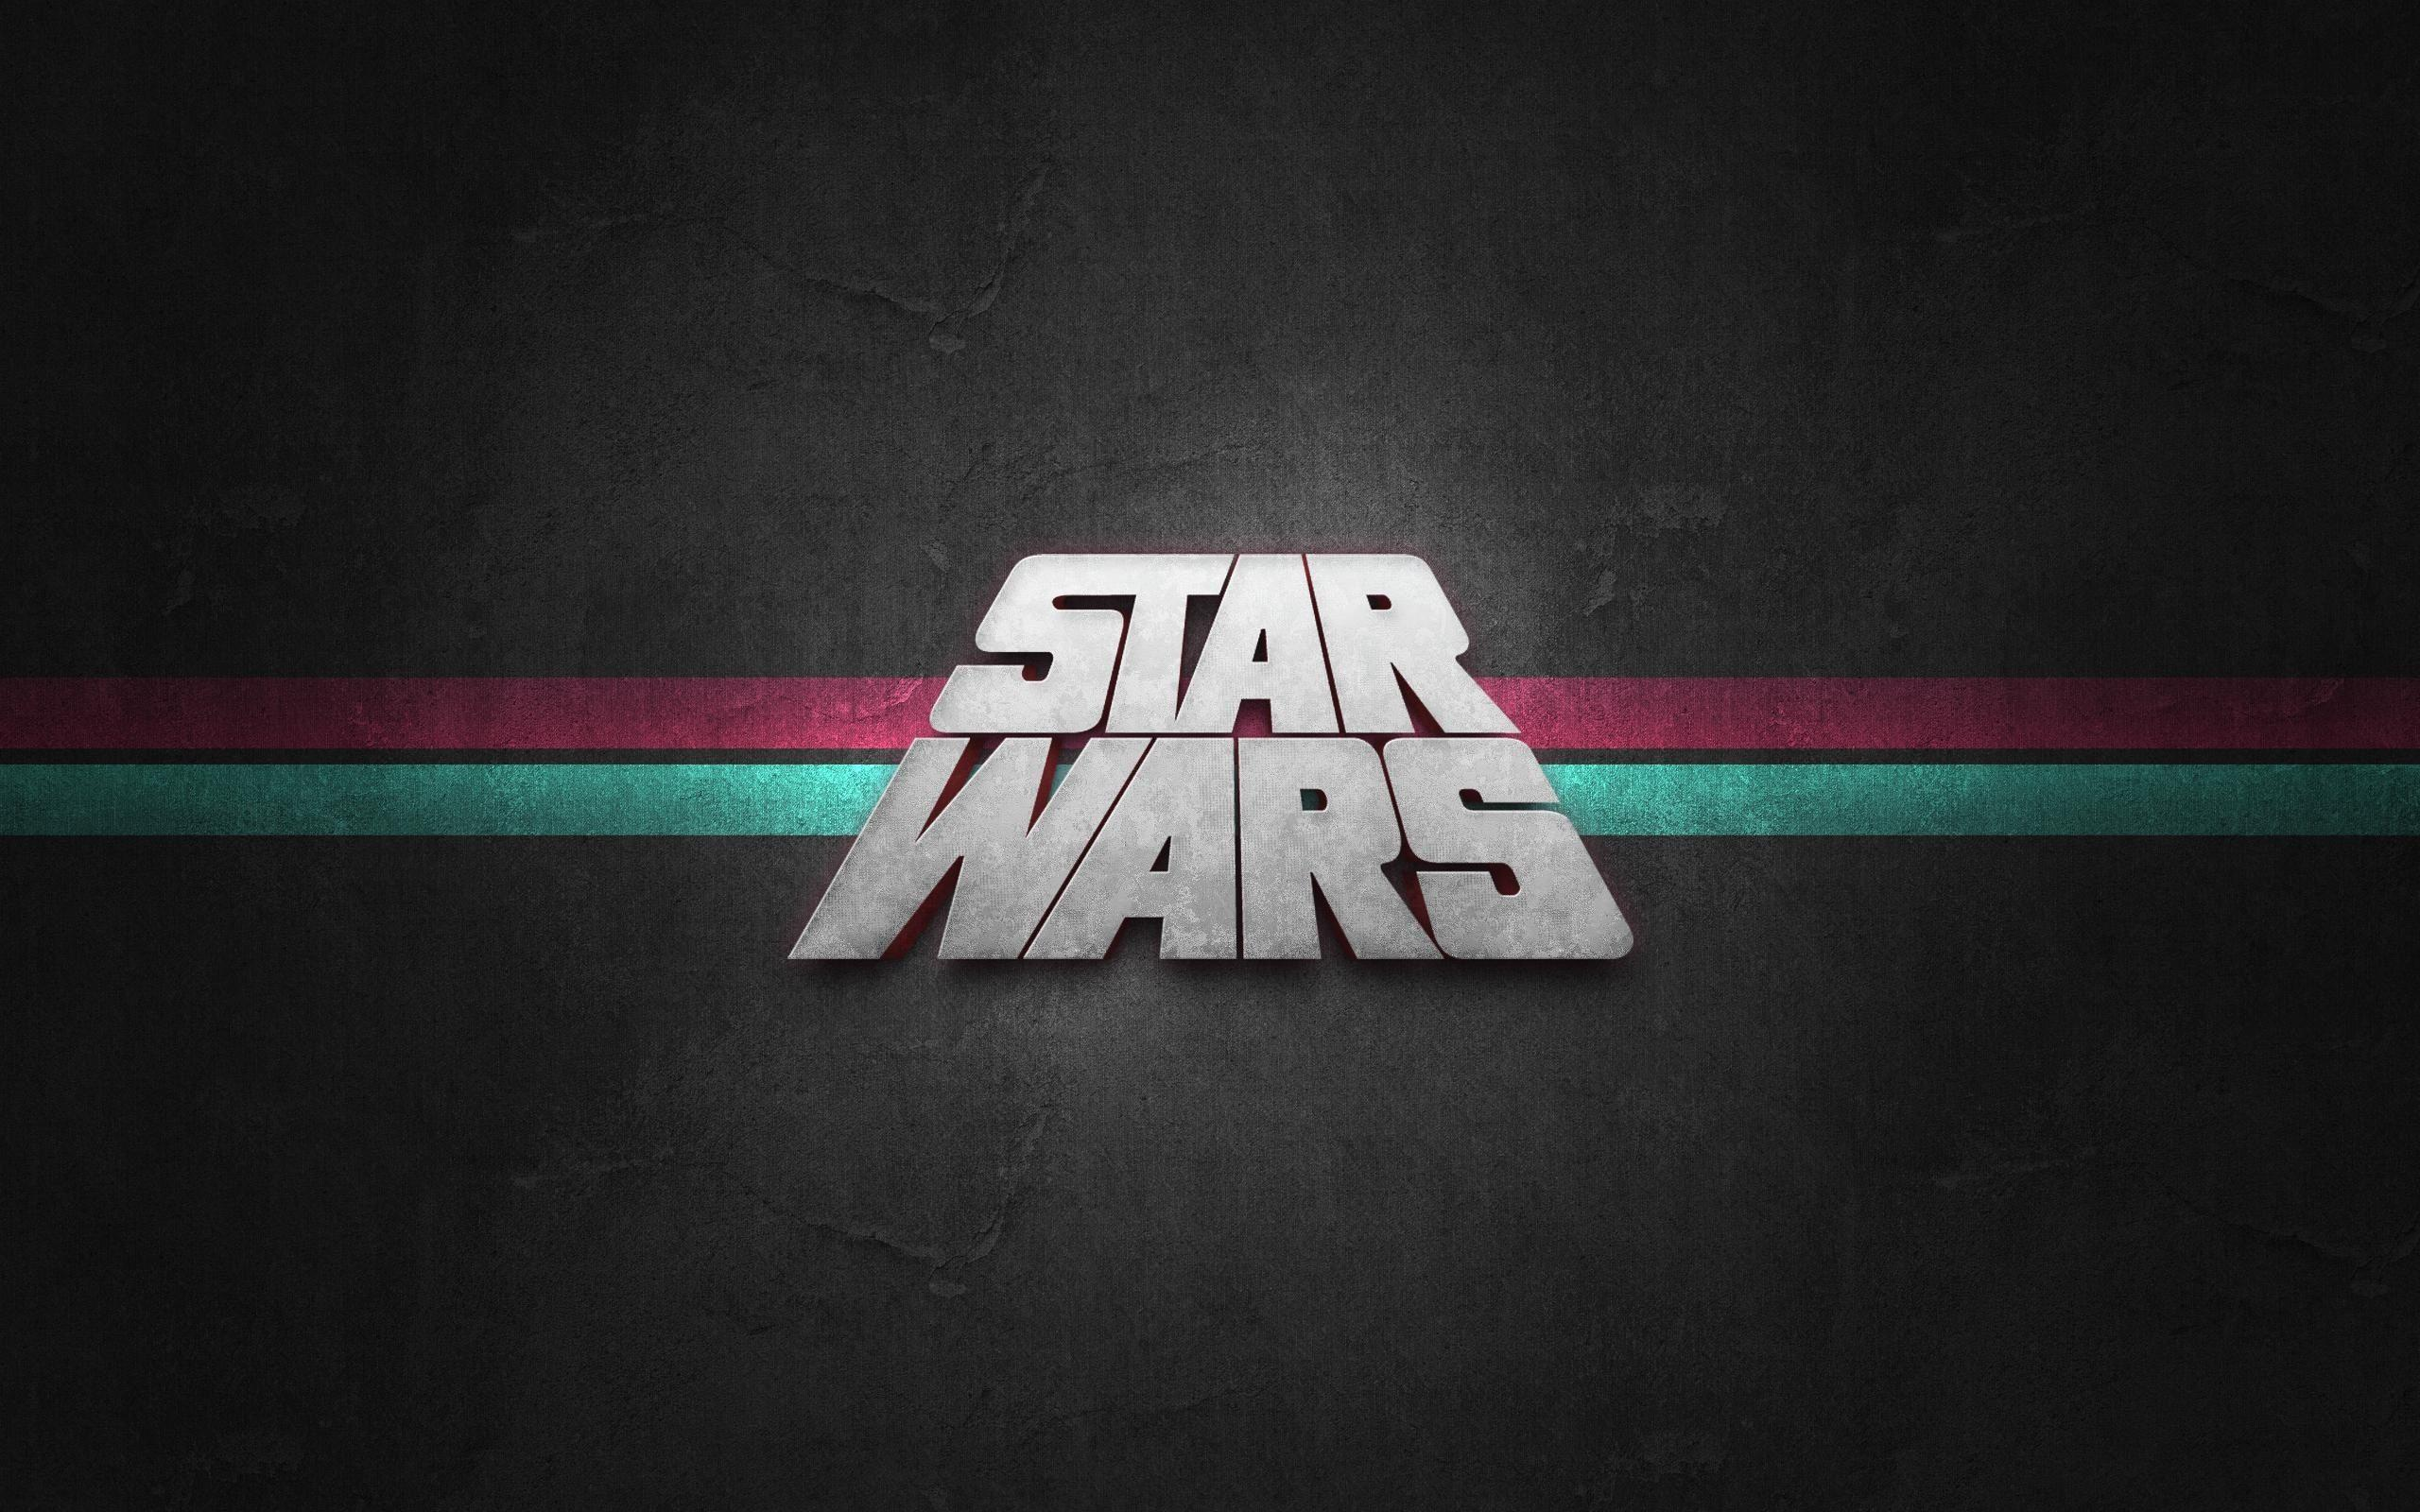 Star wars logo wallpapers wallpaper cave - Star wars cool backgrounds ...